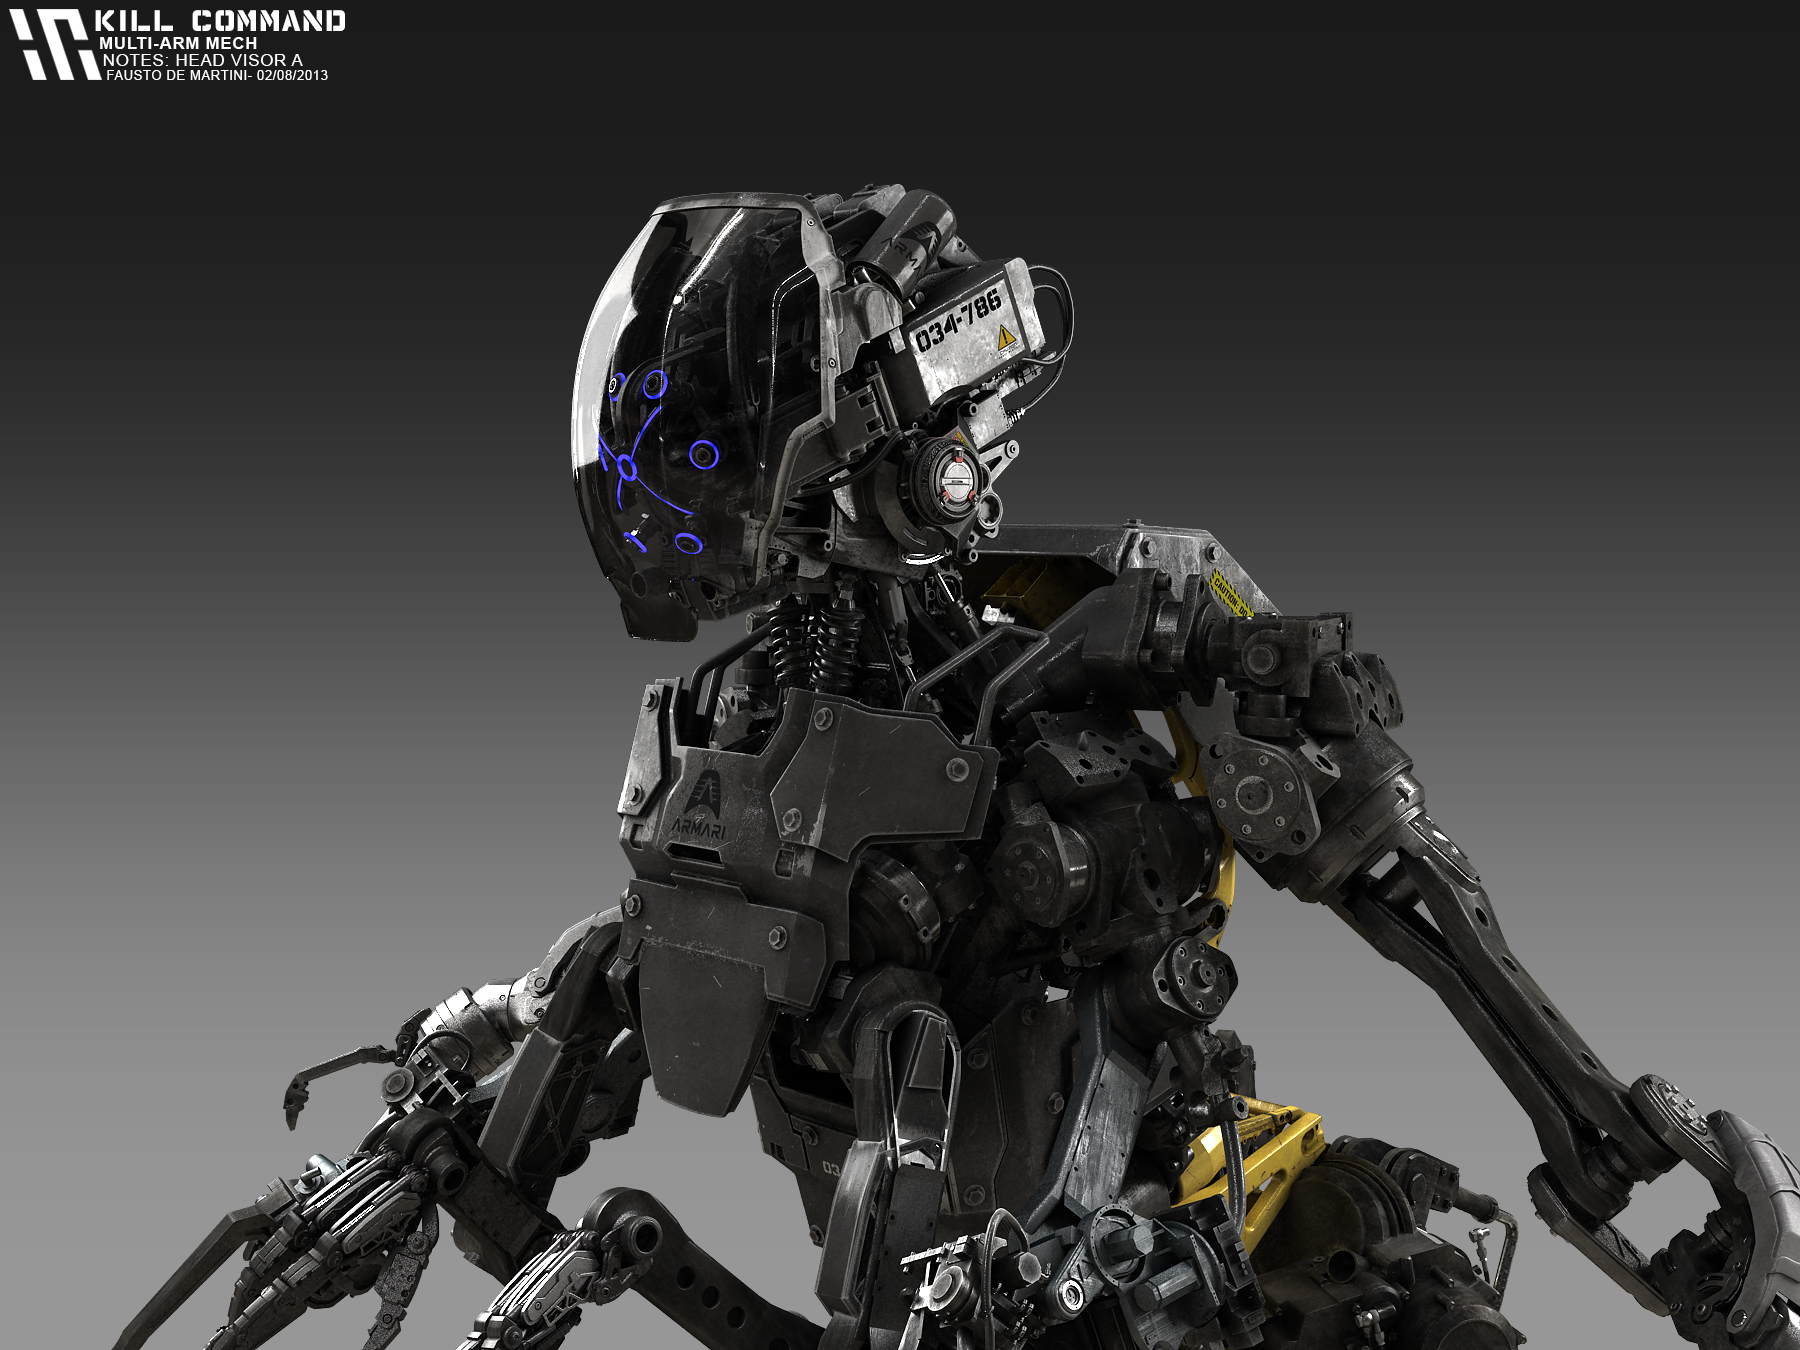 KILLCOMMAND_MultiArms_080213_HeadVisorA_03_FDM.jpg